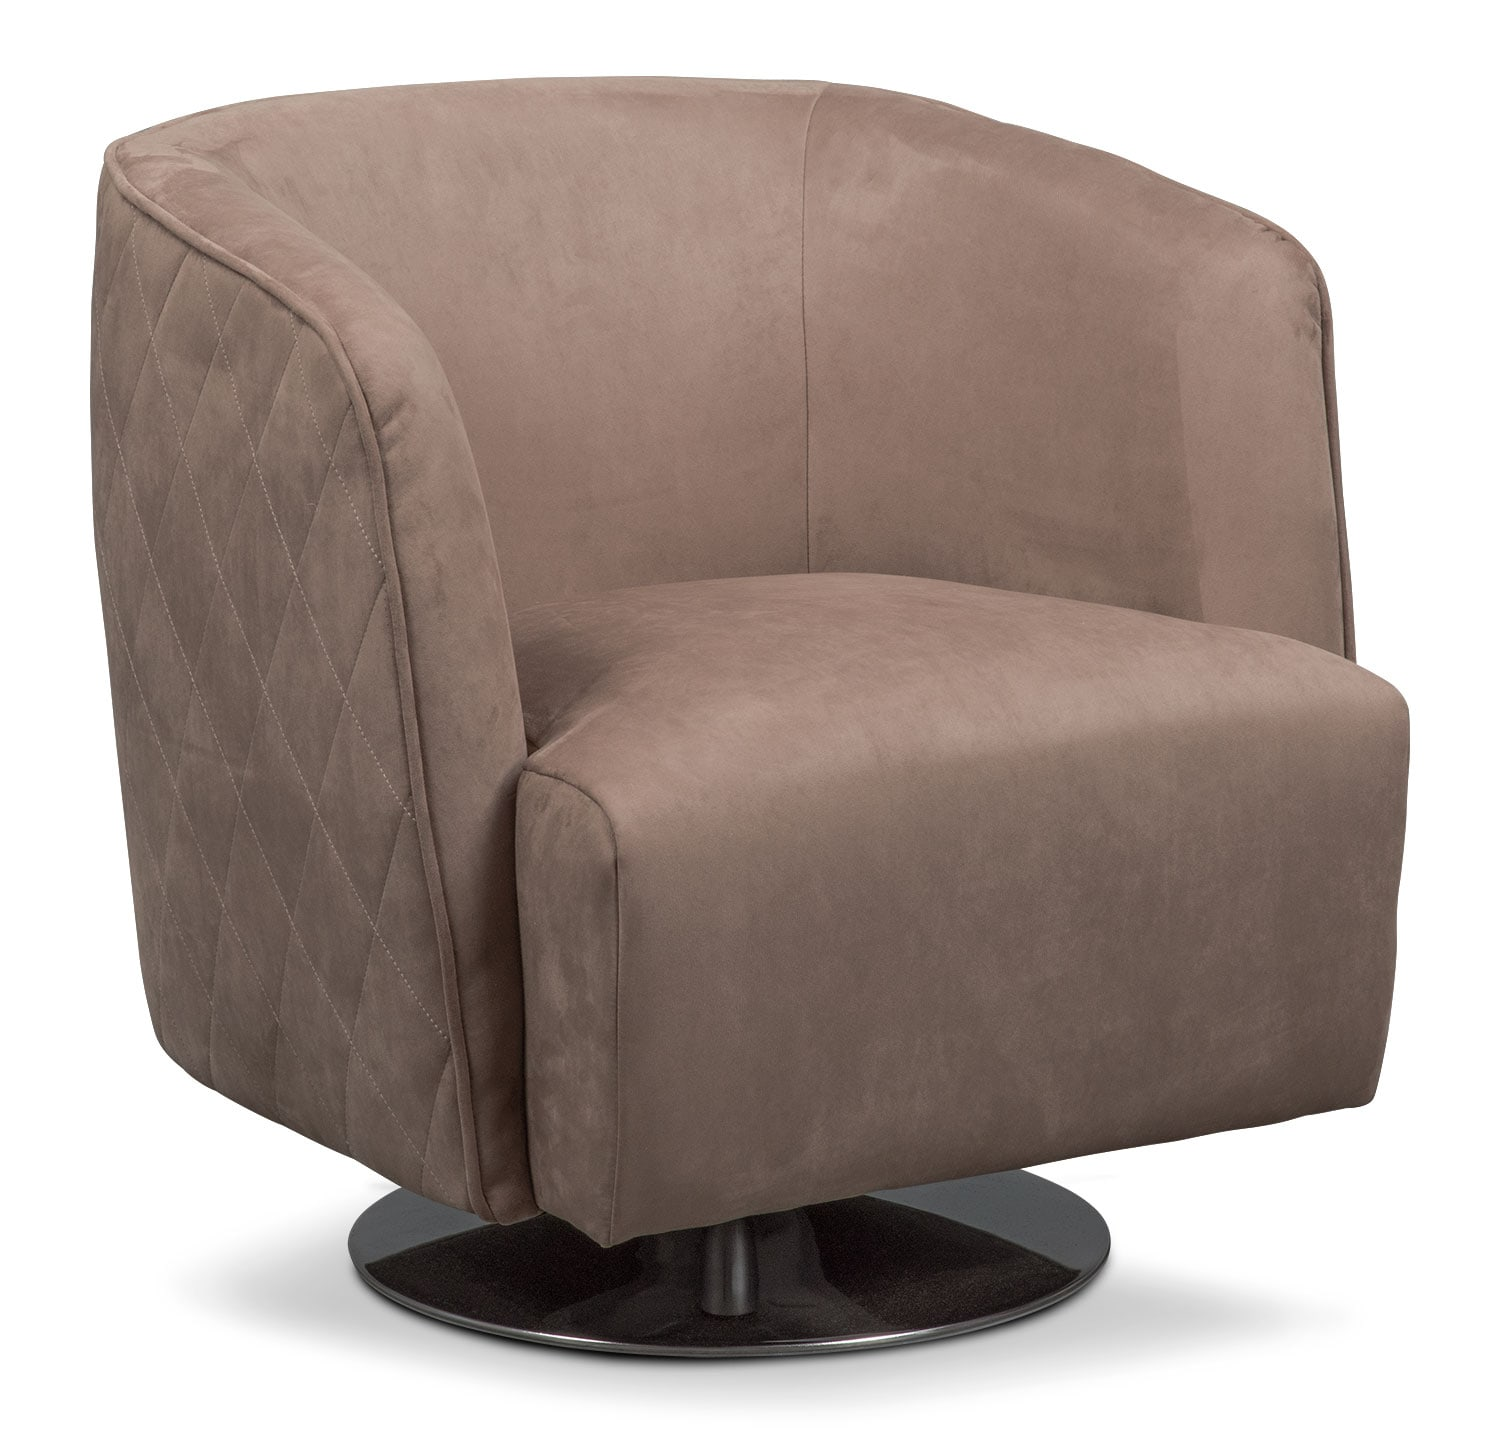 Santana swivel chair taupe value city furniture for Swivel chairs